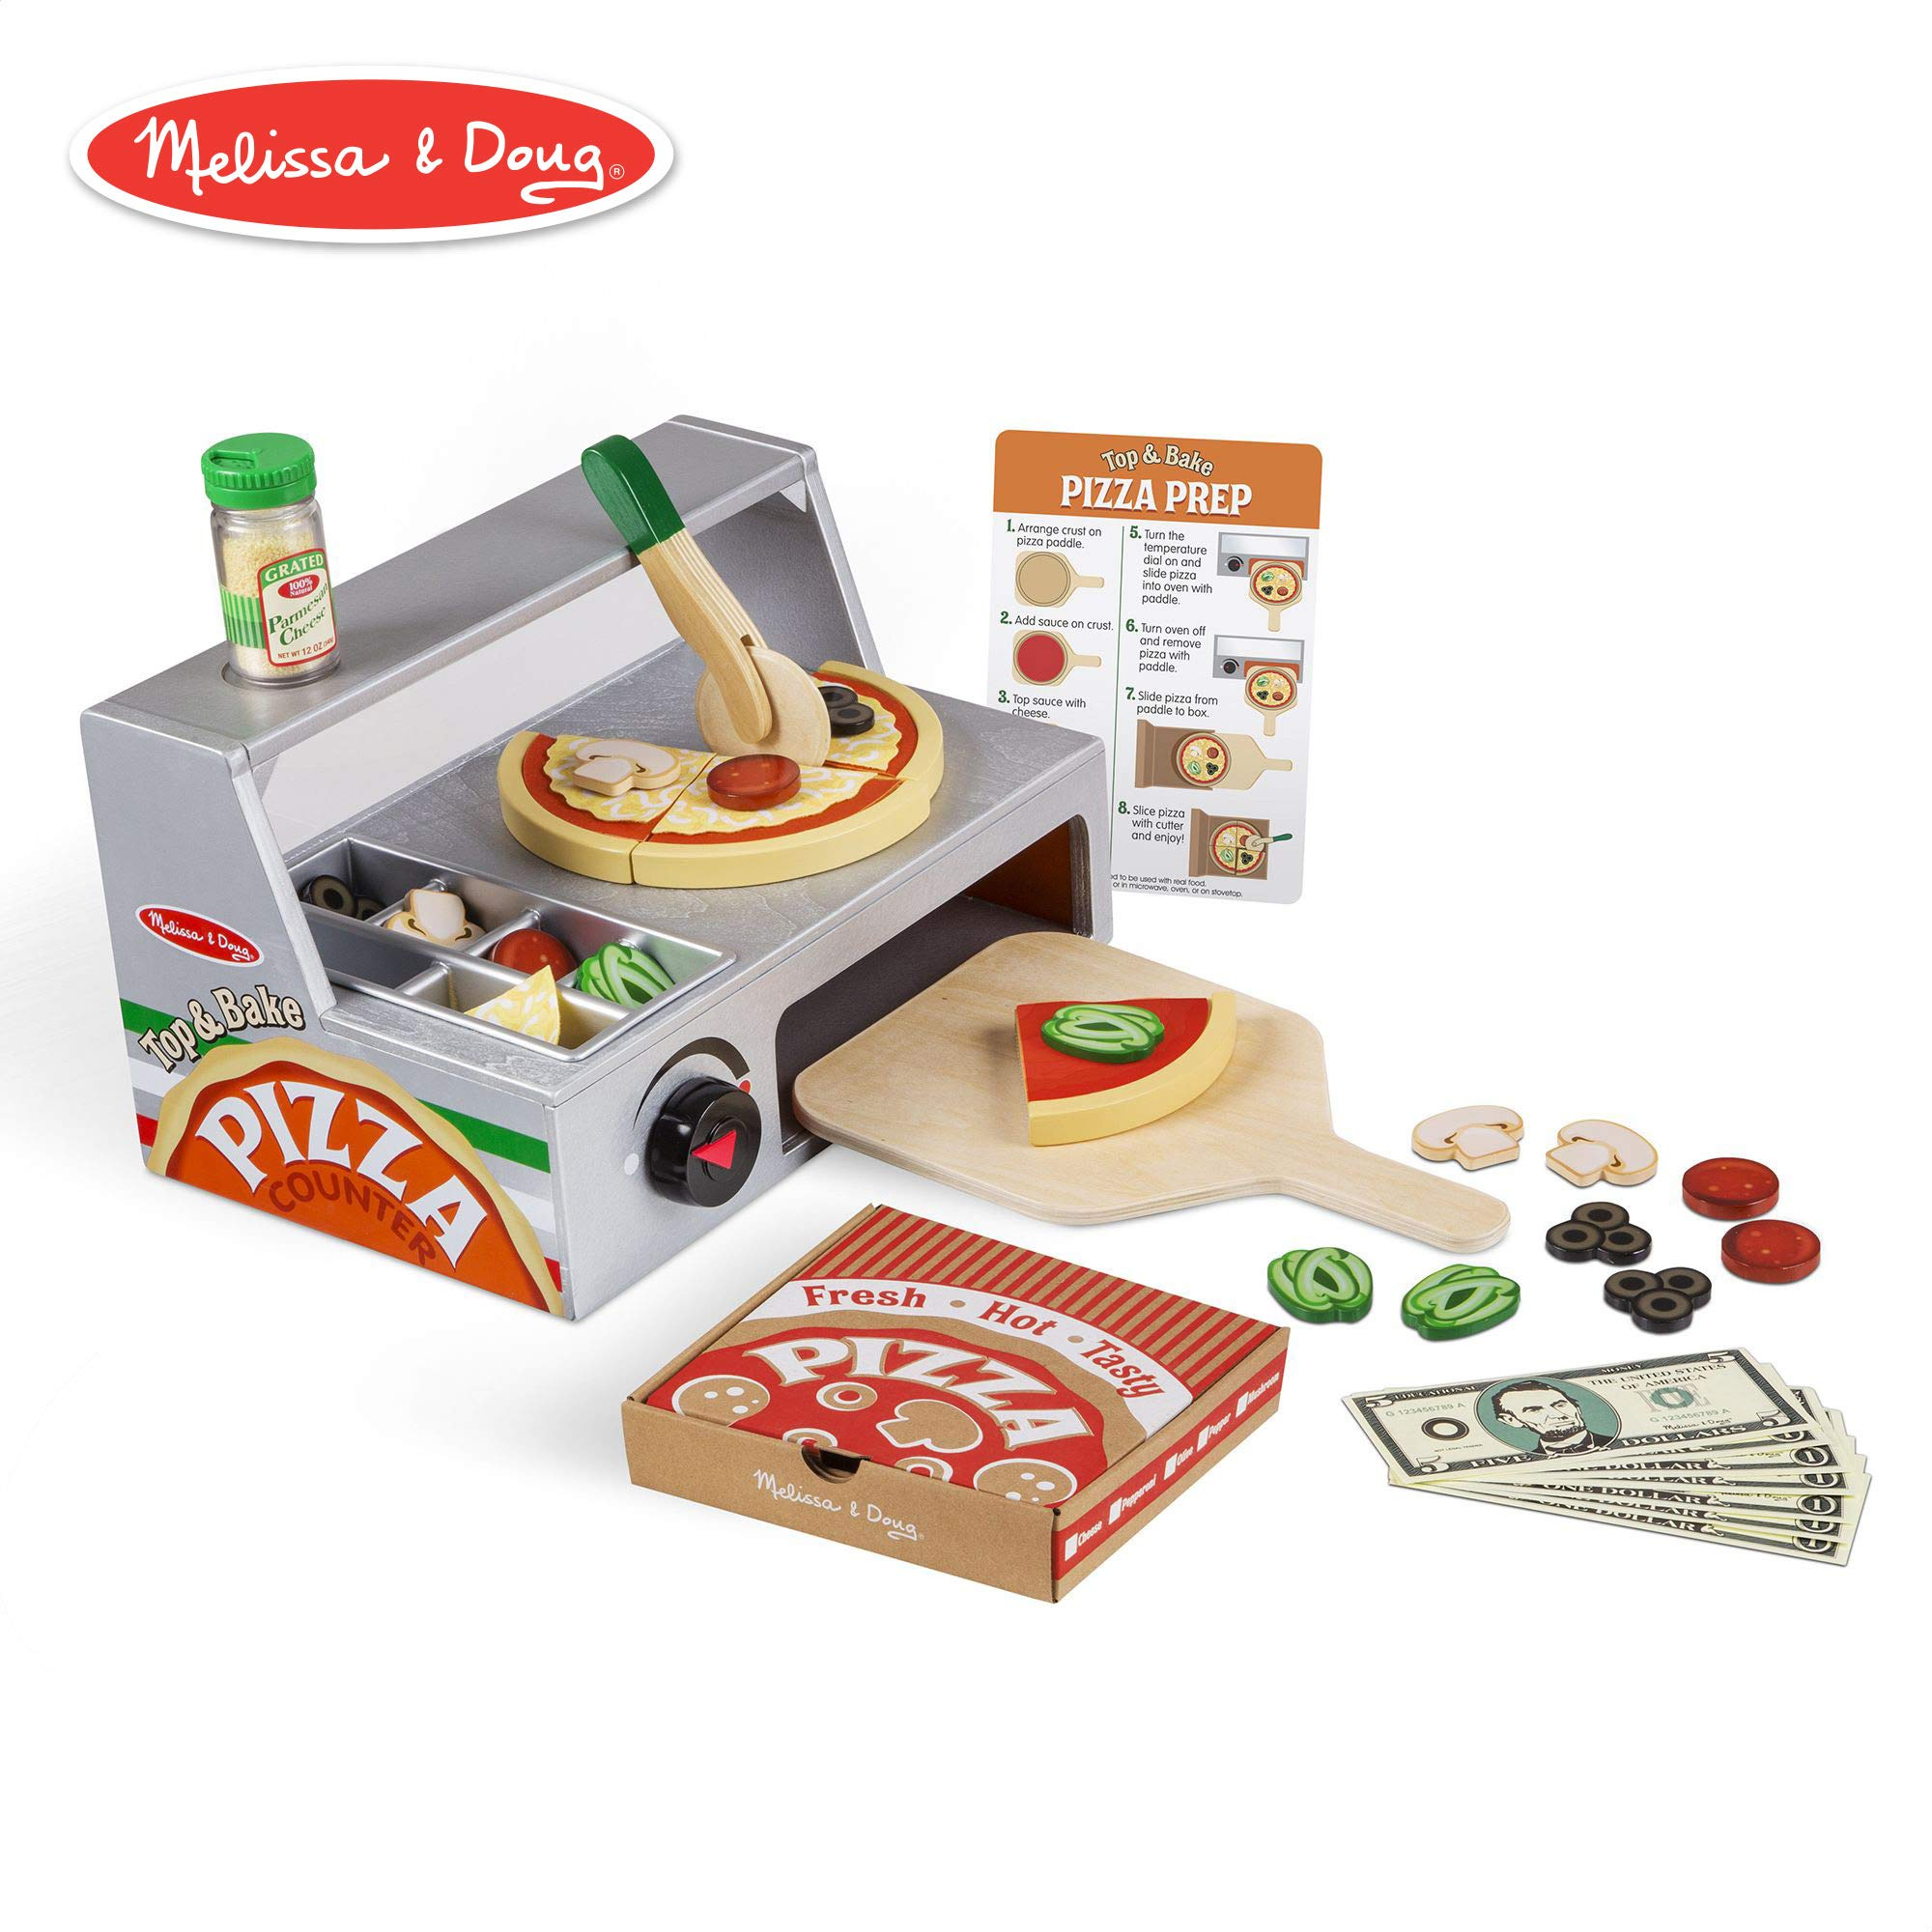 Melissa & Doug Top and Bake Wooden Pizza Counter Play Food Set (Pretend Play, Helps Support Cognitive Development, 34 Pieces, 7.75'' H x 9.25'' W x 13.25'' L)